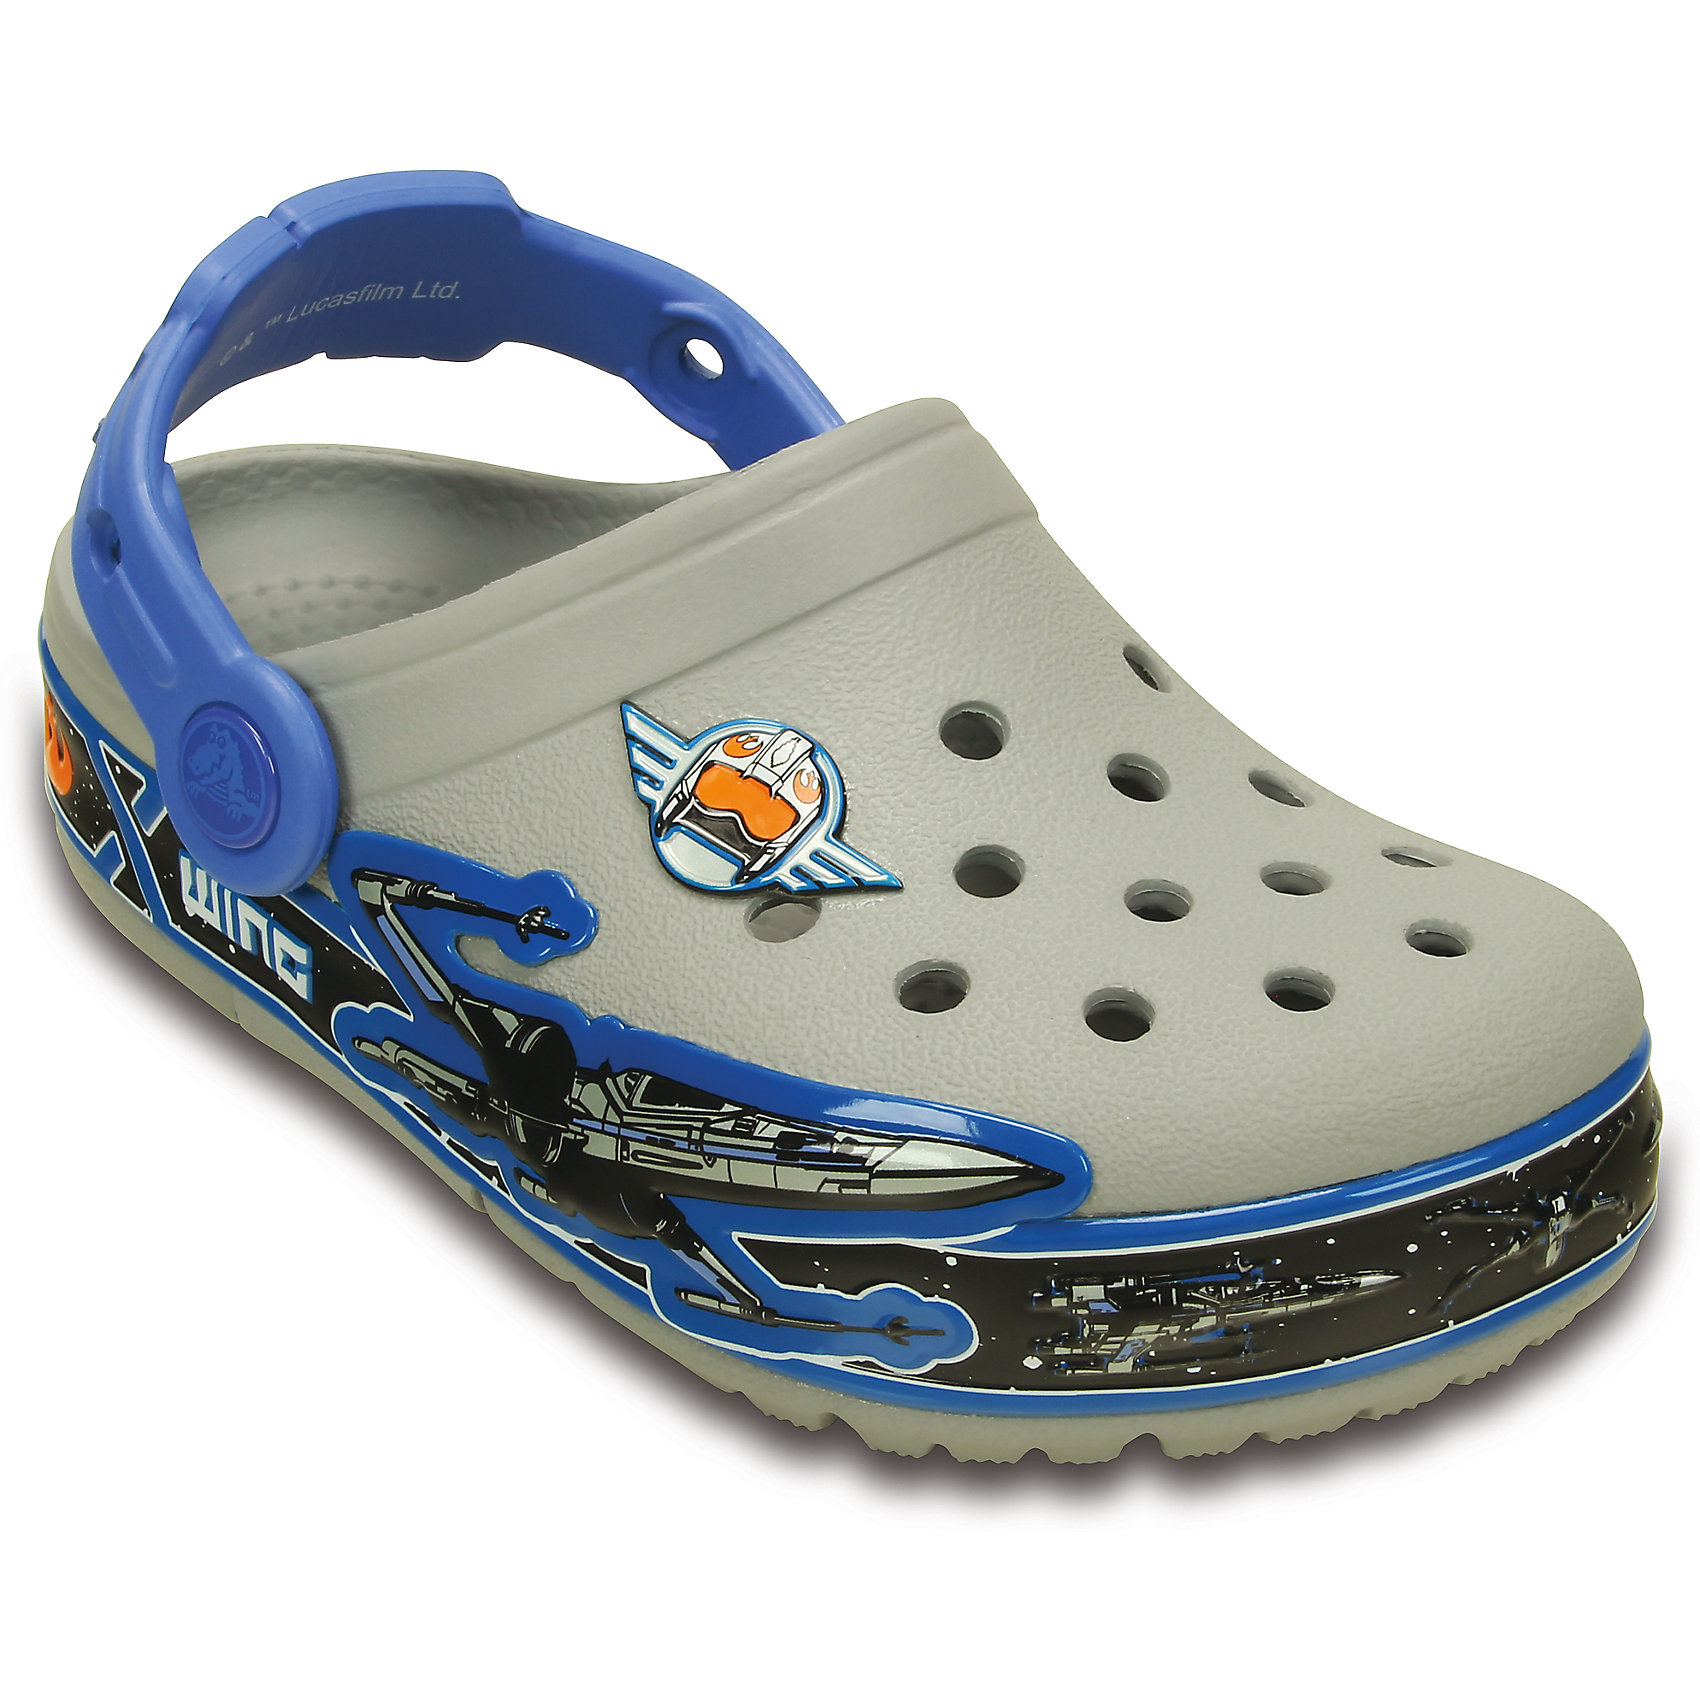 Сабо со светодиодами Kids' CrocsLights Star Wars X-Wing Clog Crocs